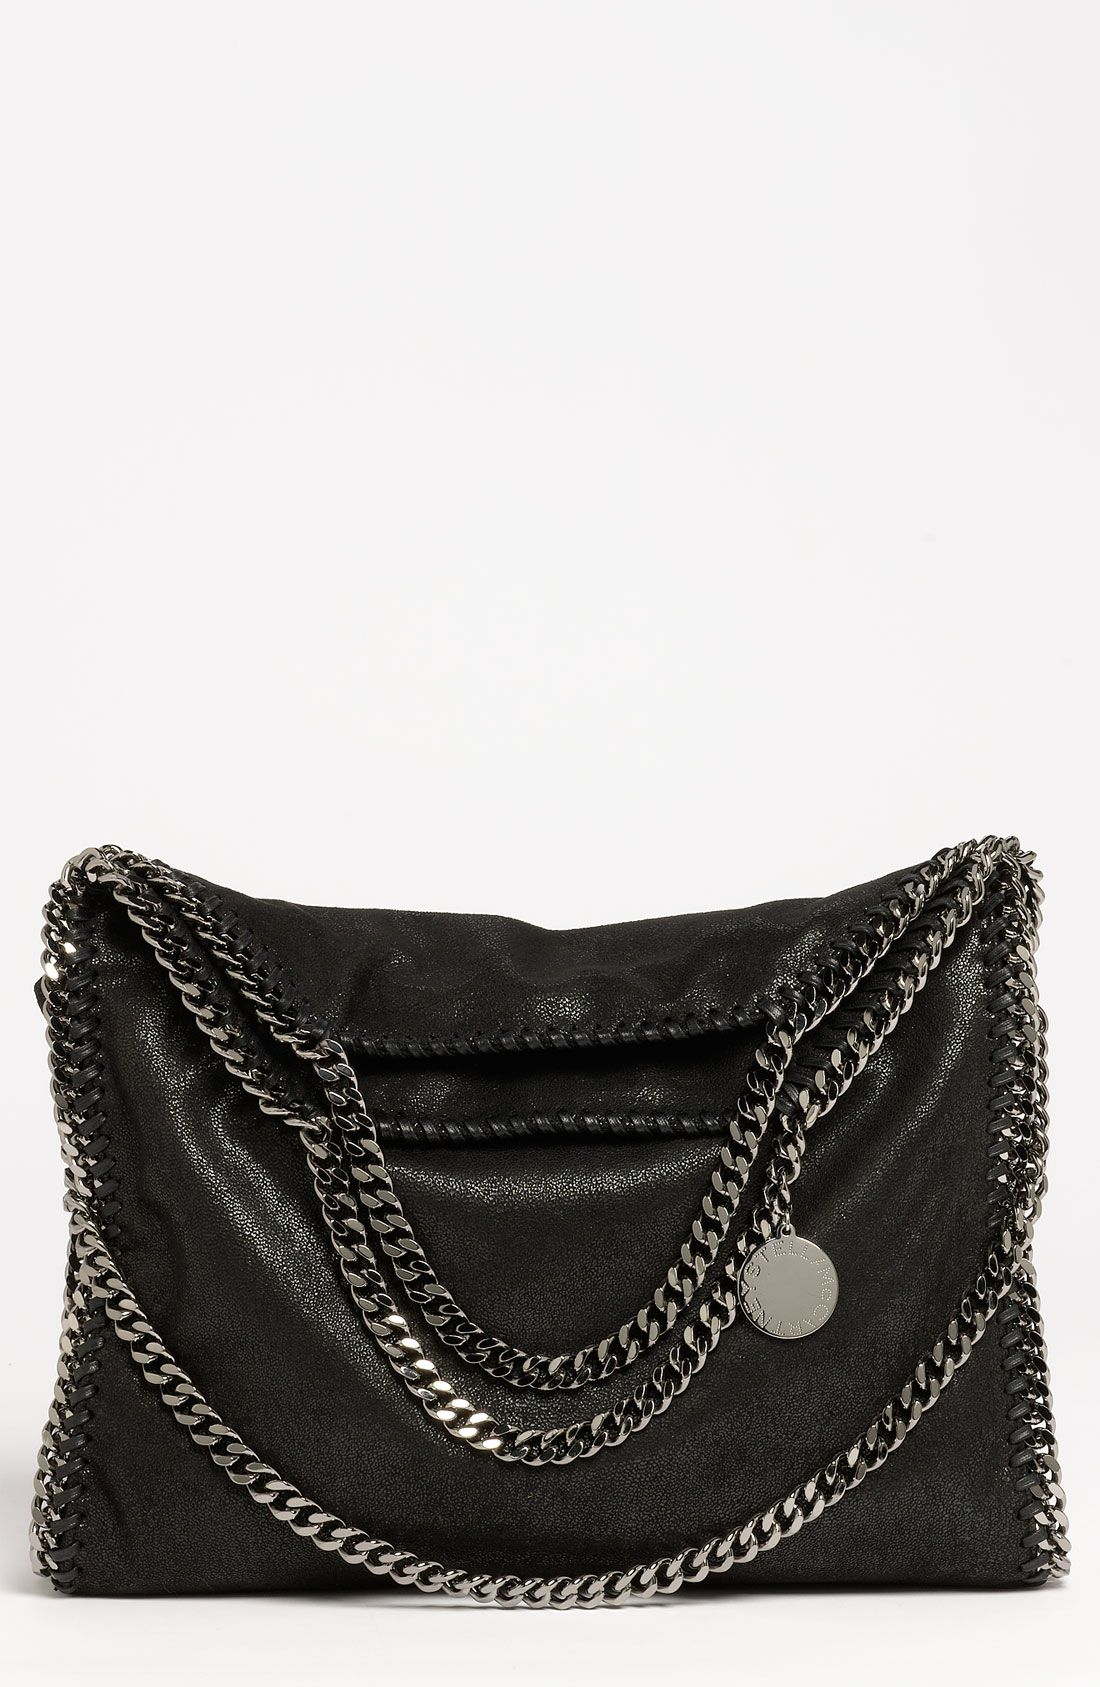 e367acf430f9 Stella McCartney  Falabella - Shaggy Deer  Faux Leather Foldover Tote